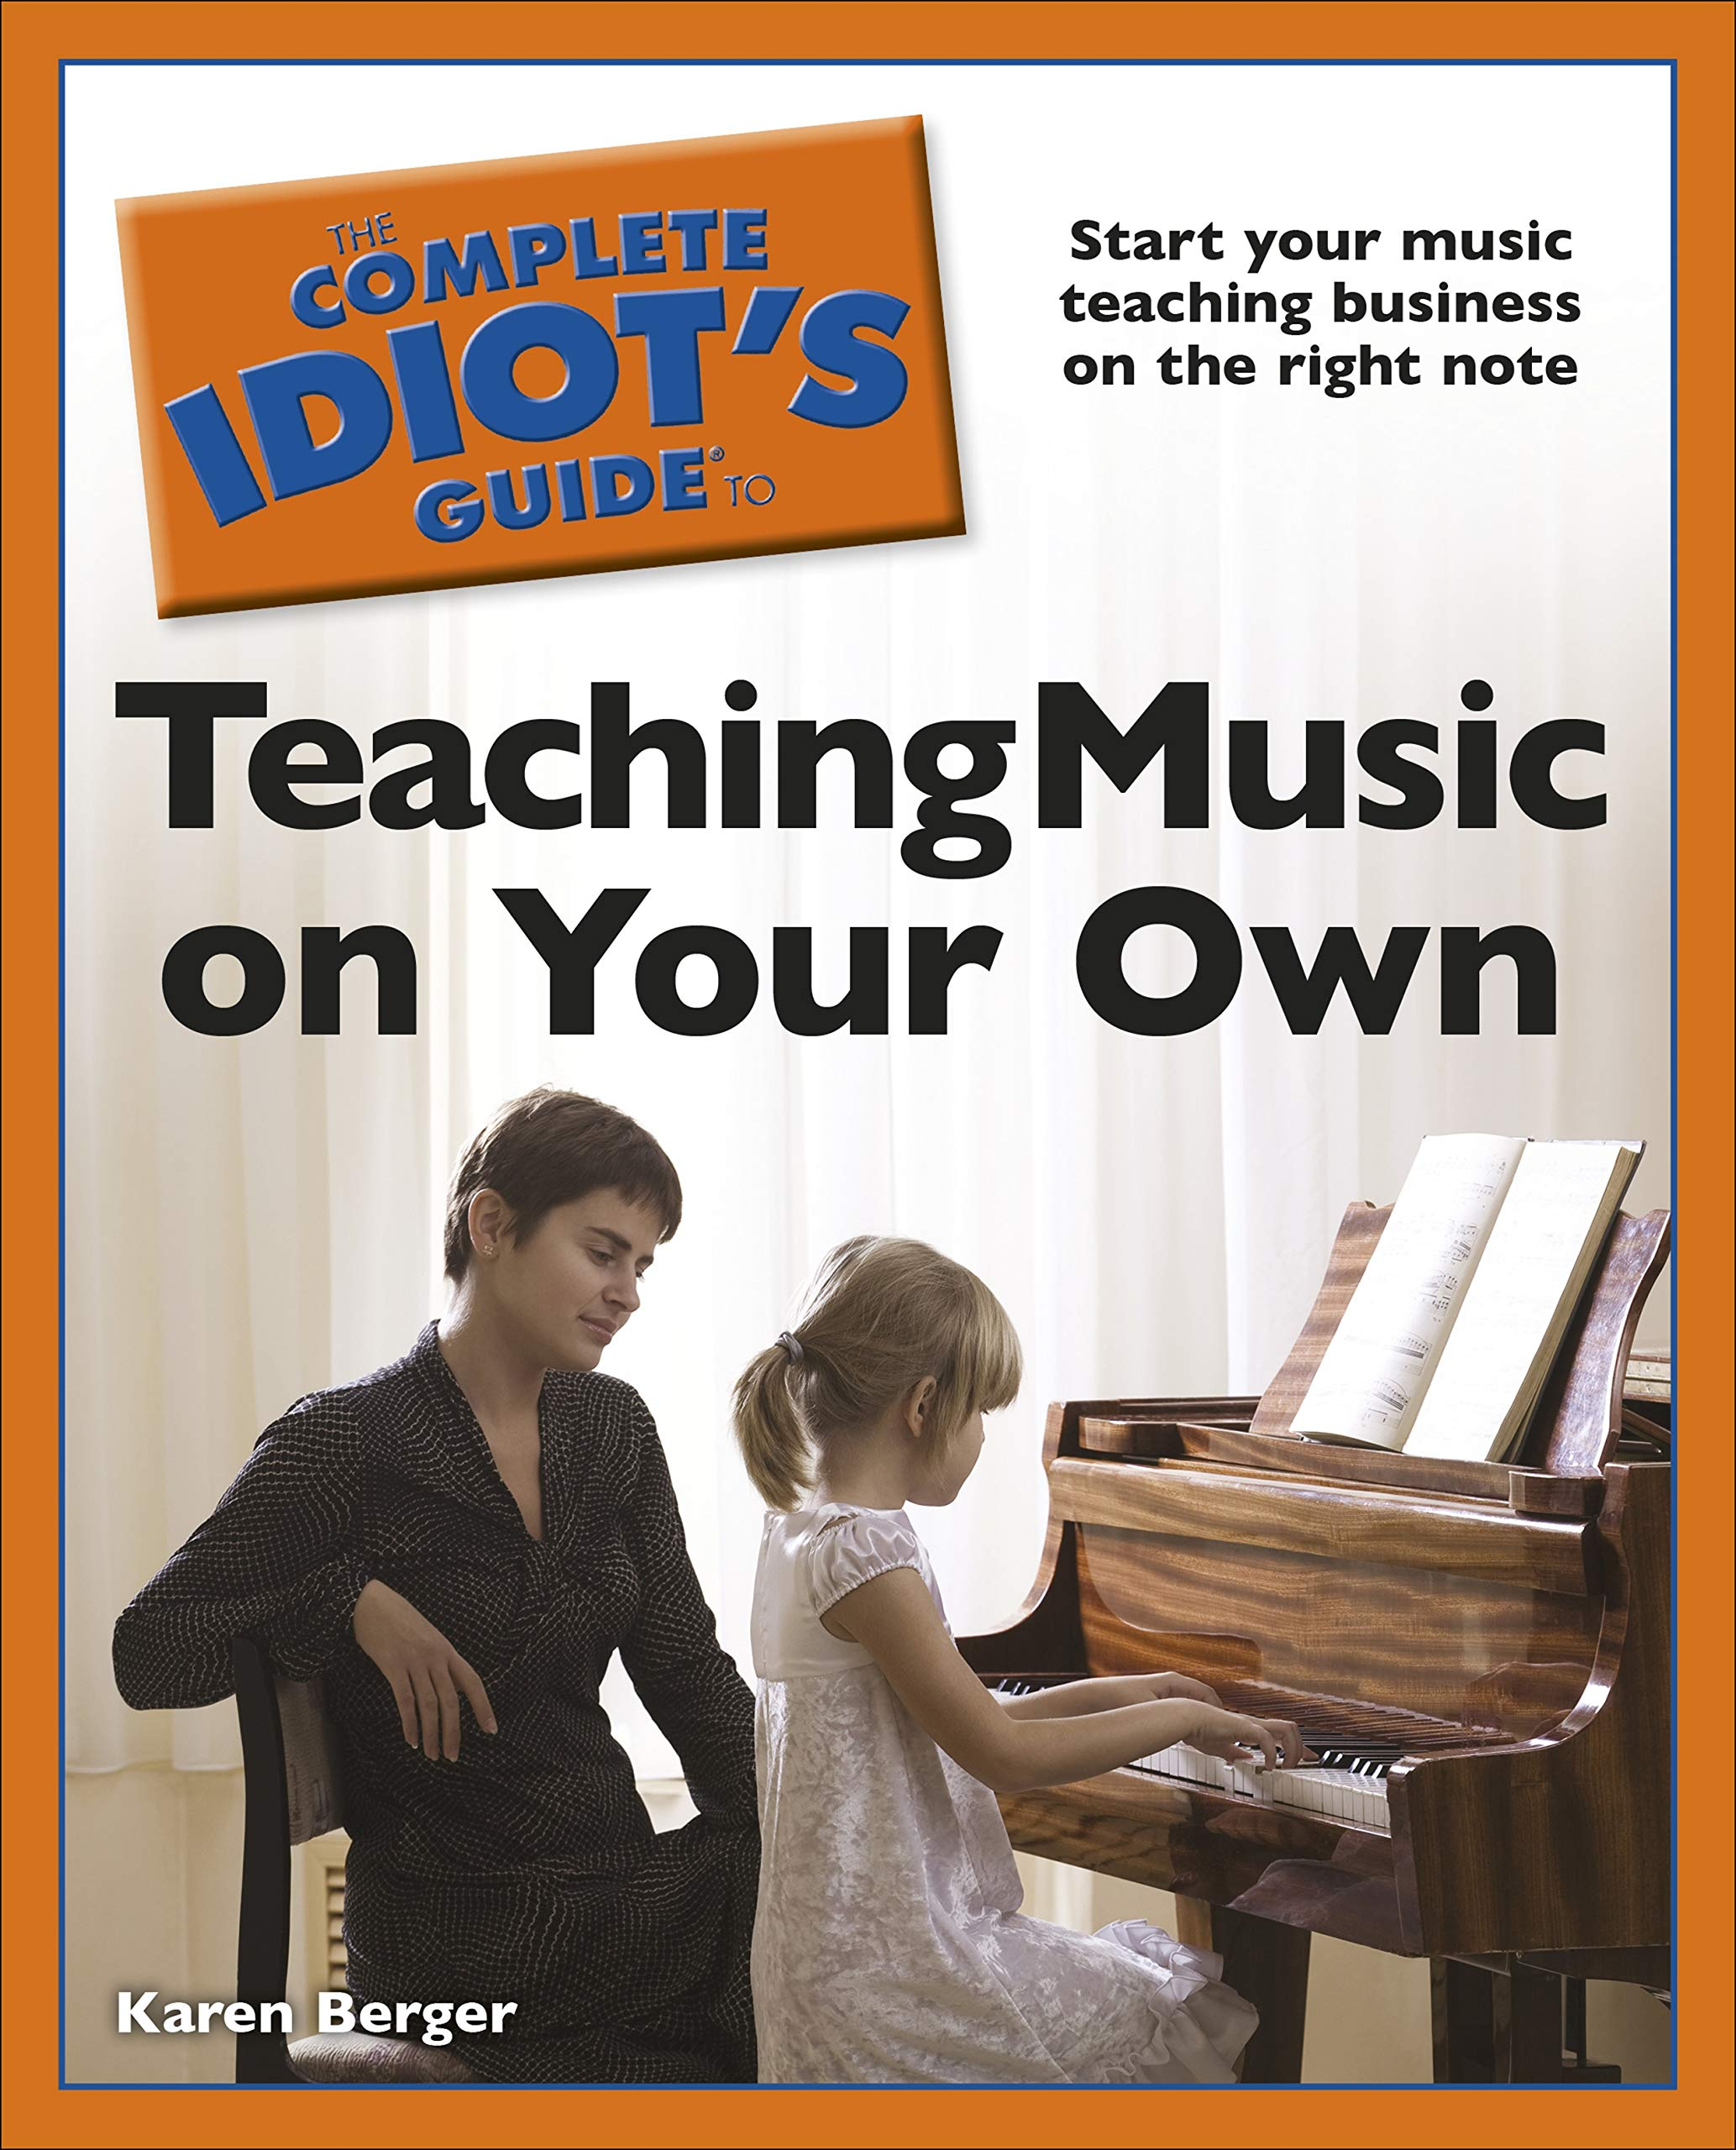 The Complete Idiot's Guide to Teaching Music on Your Own: Start Your Music Teaching Business on the Right Note